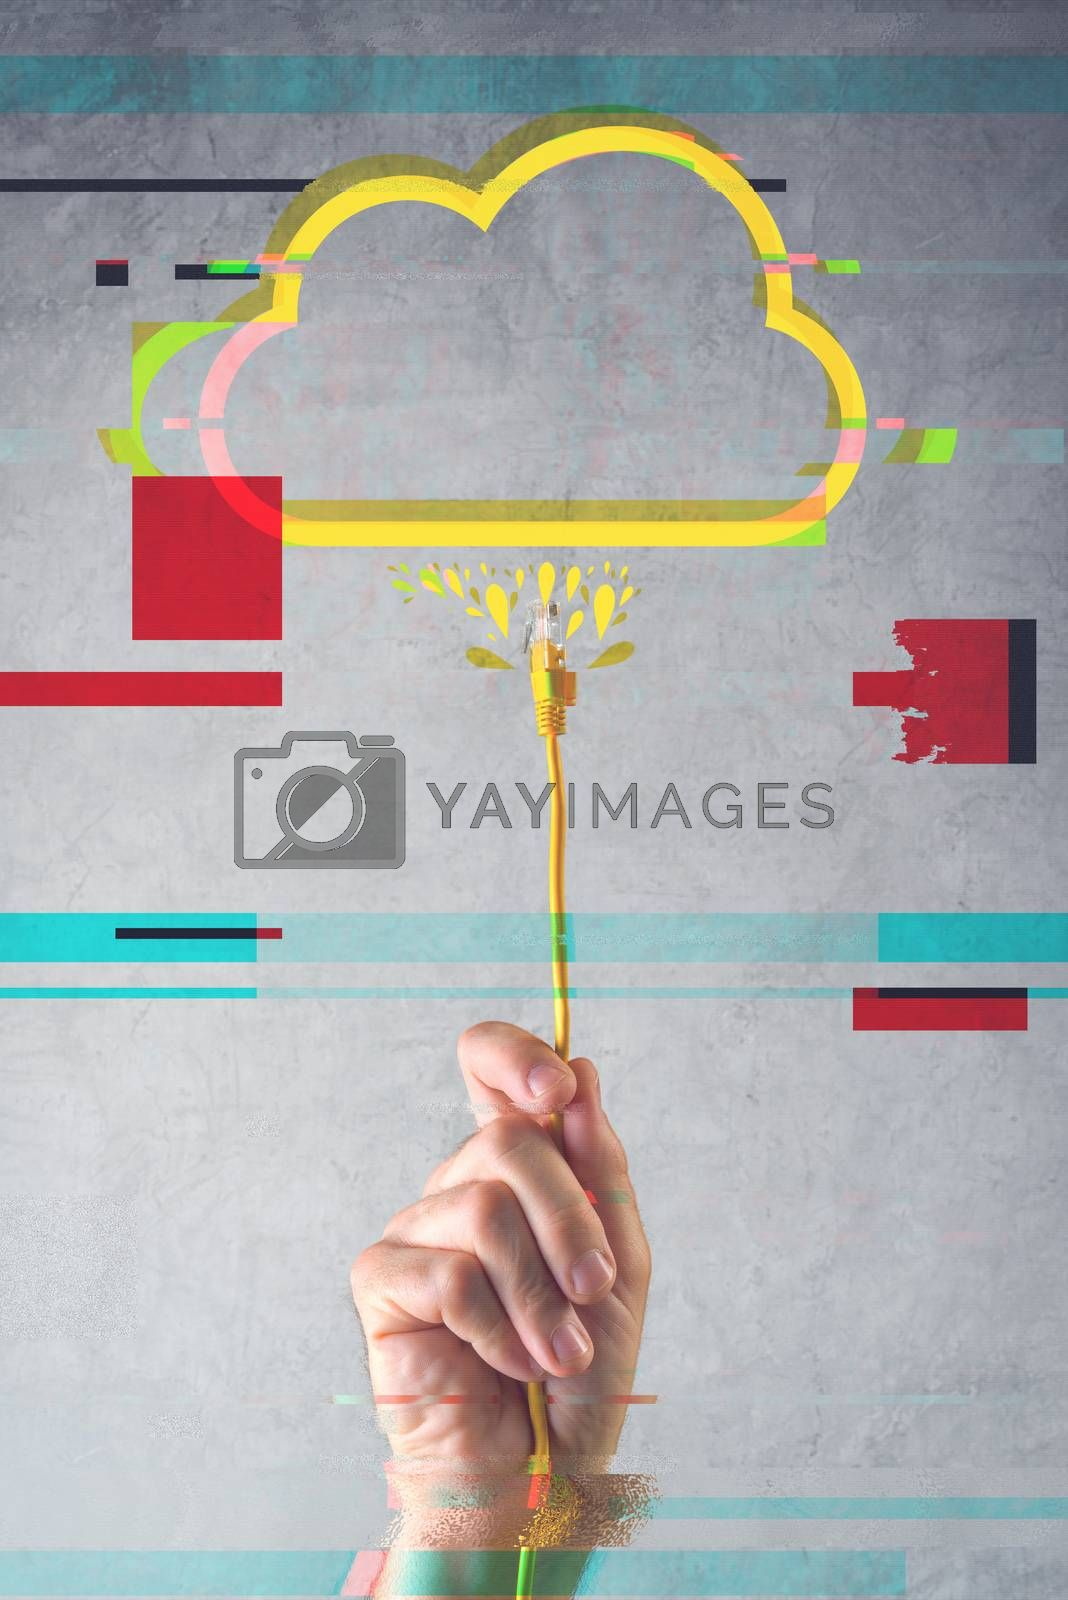 Cloud computing concept with digital glitch effect, male hand with LAN cable